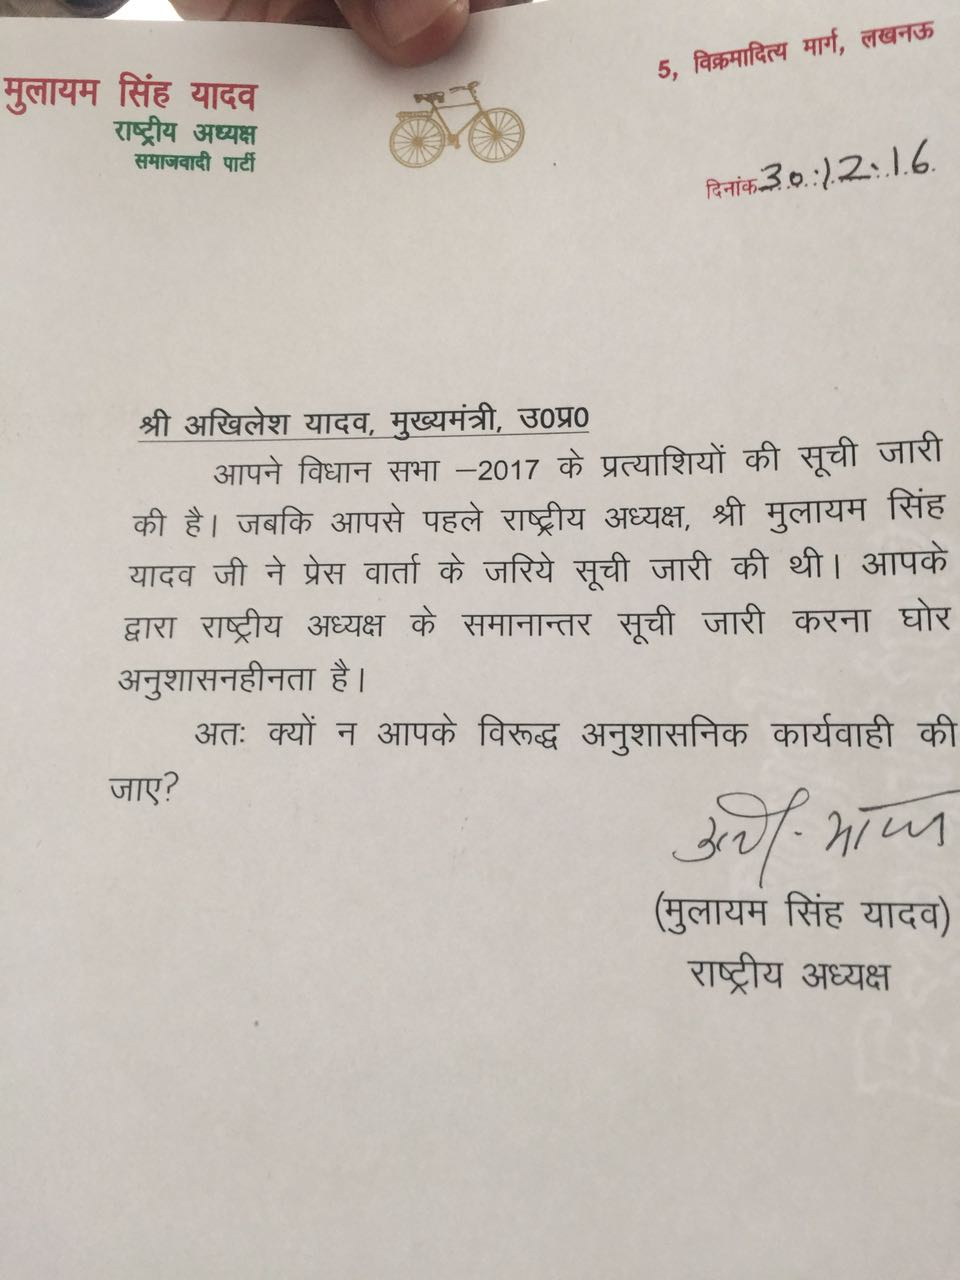 With no end to feud mulayam akhilesh yadav look for life beyond the cycle economic times - Showcause Notice Also Issued To Samajwadi Party General Secretary Ram Gopal Yadav For Making Anti Party Statements